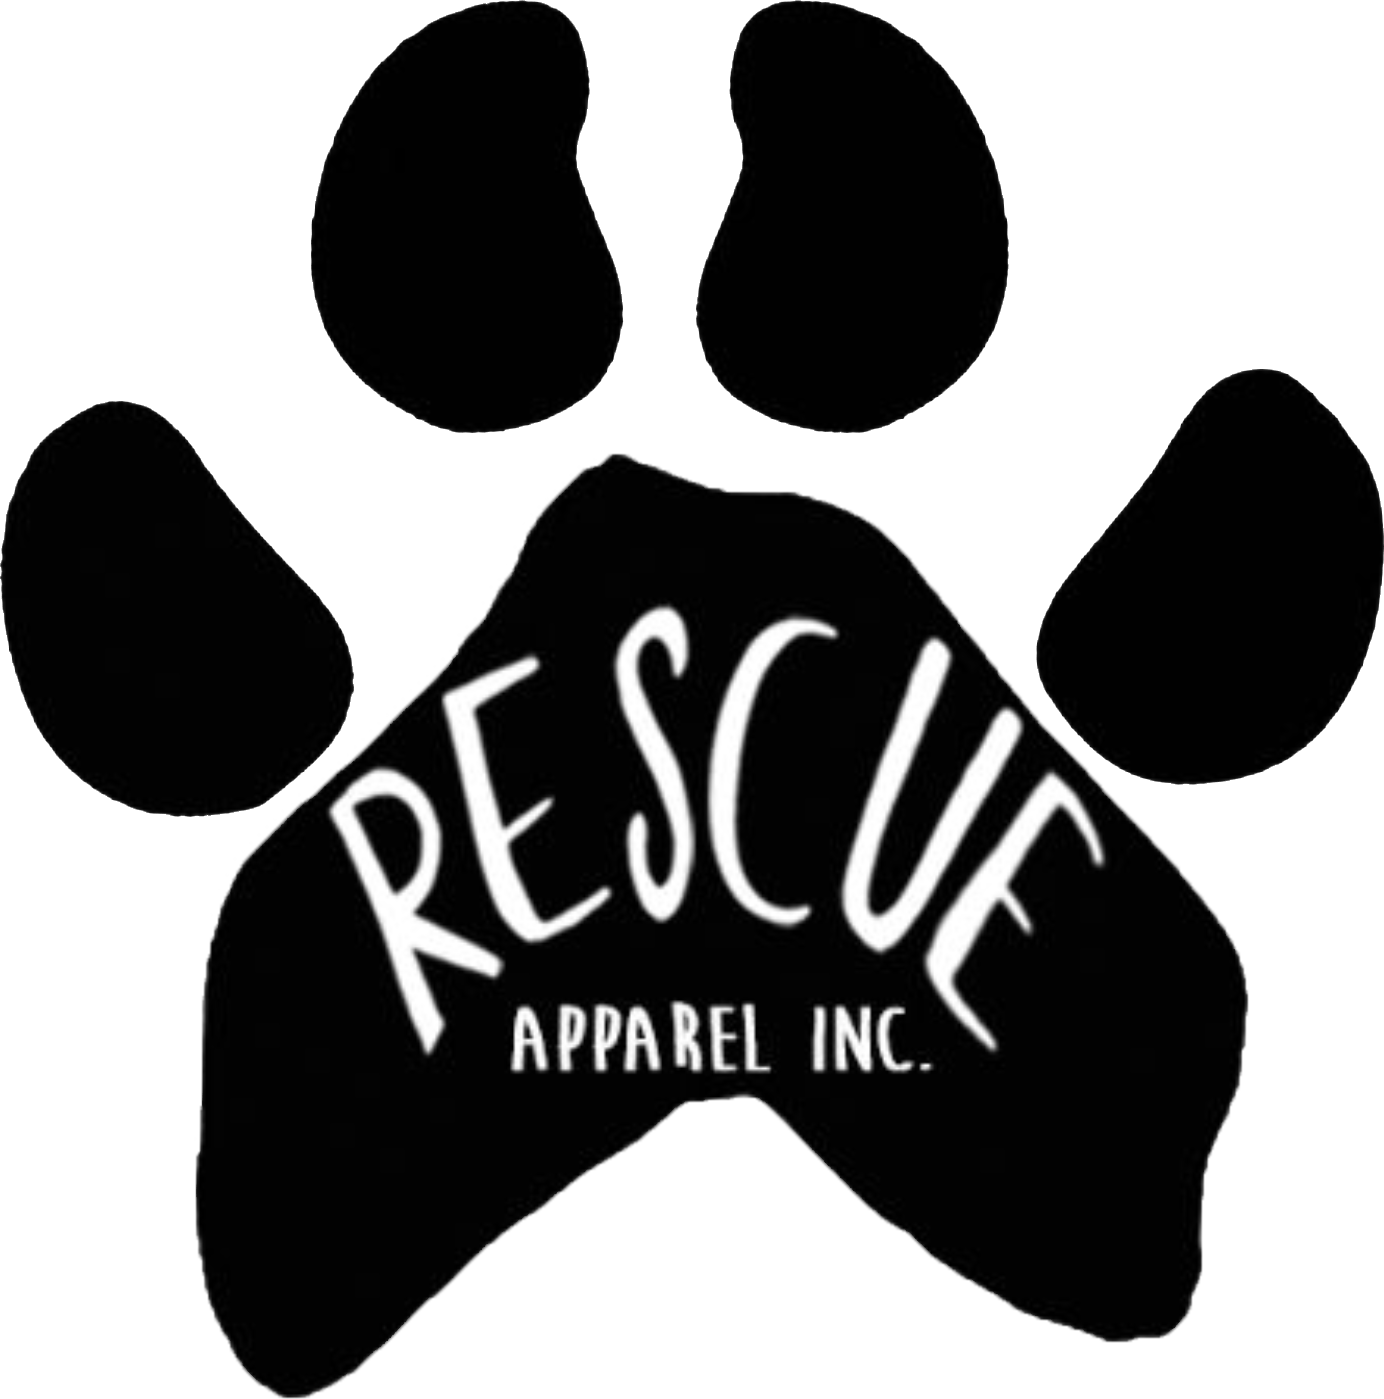 Rescue Apparel